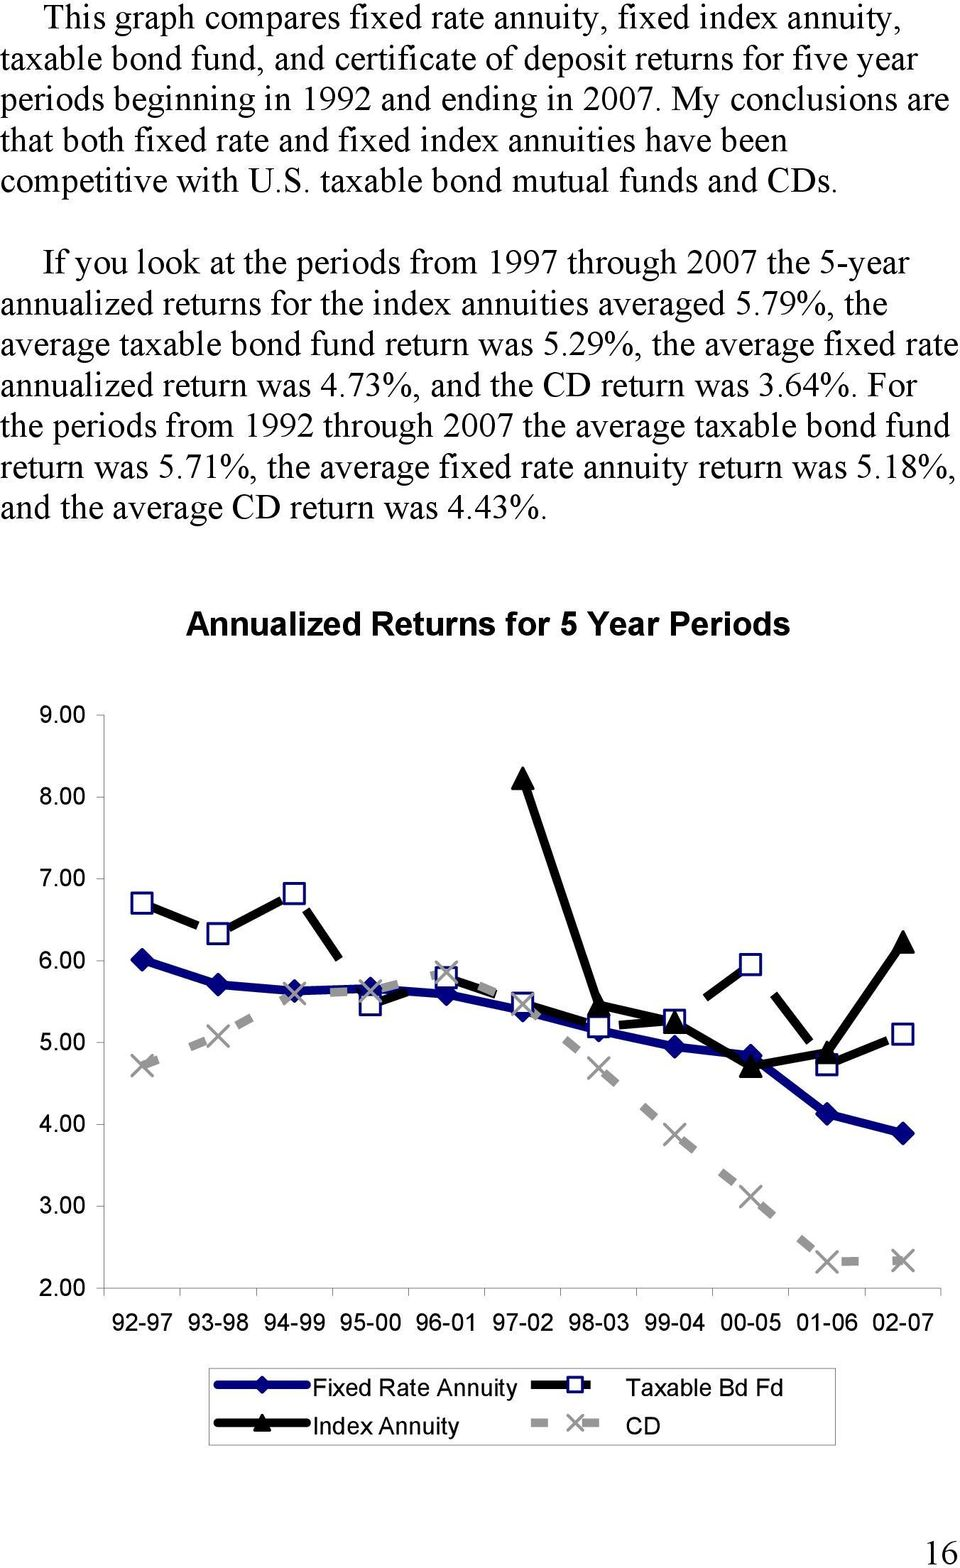 If you look at the periods from 1997 through 2007 the 5-year annualized returns for the index annuities averaged 5.79%, the average taxable bond fund return was 5.